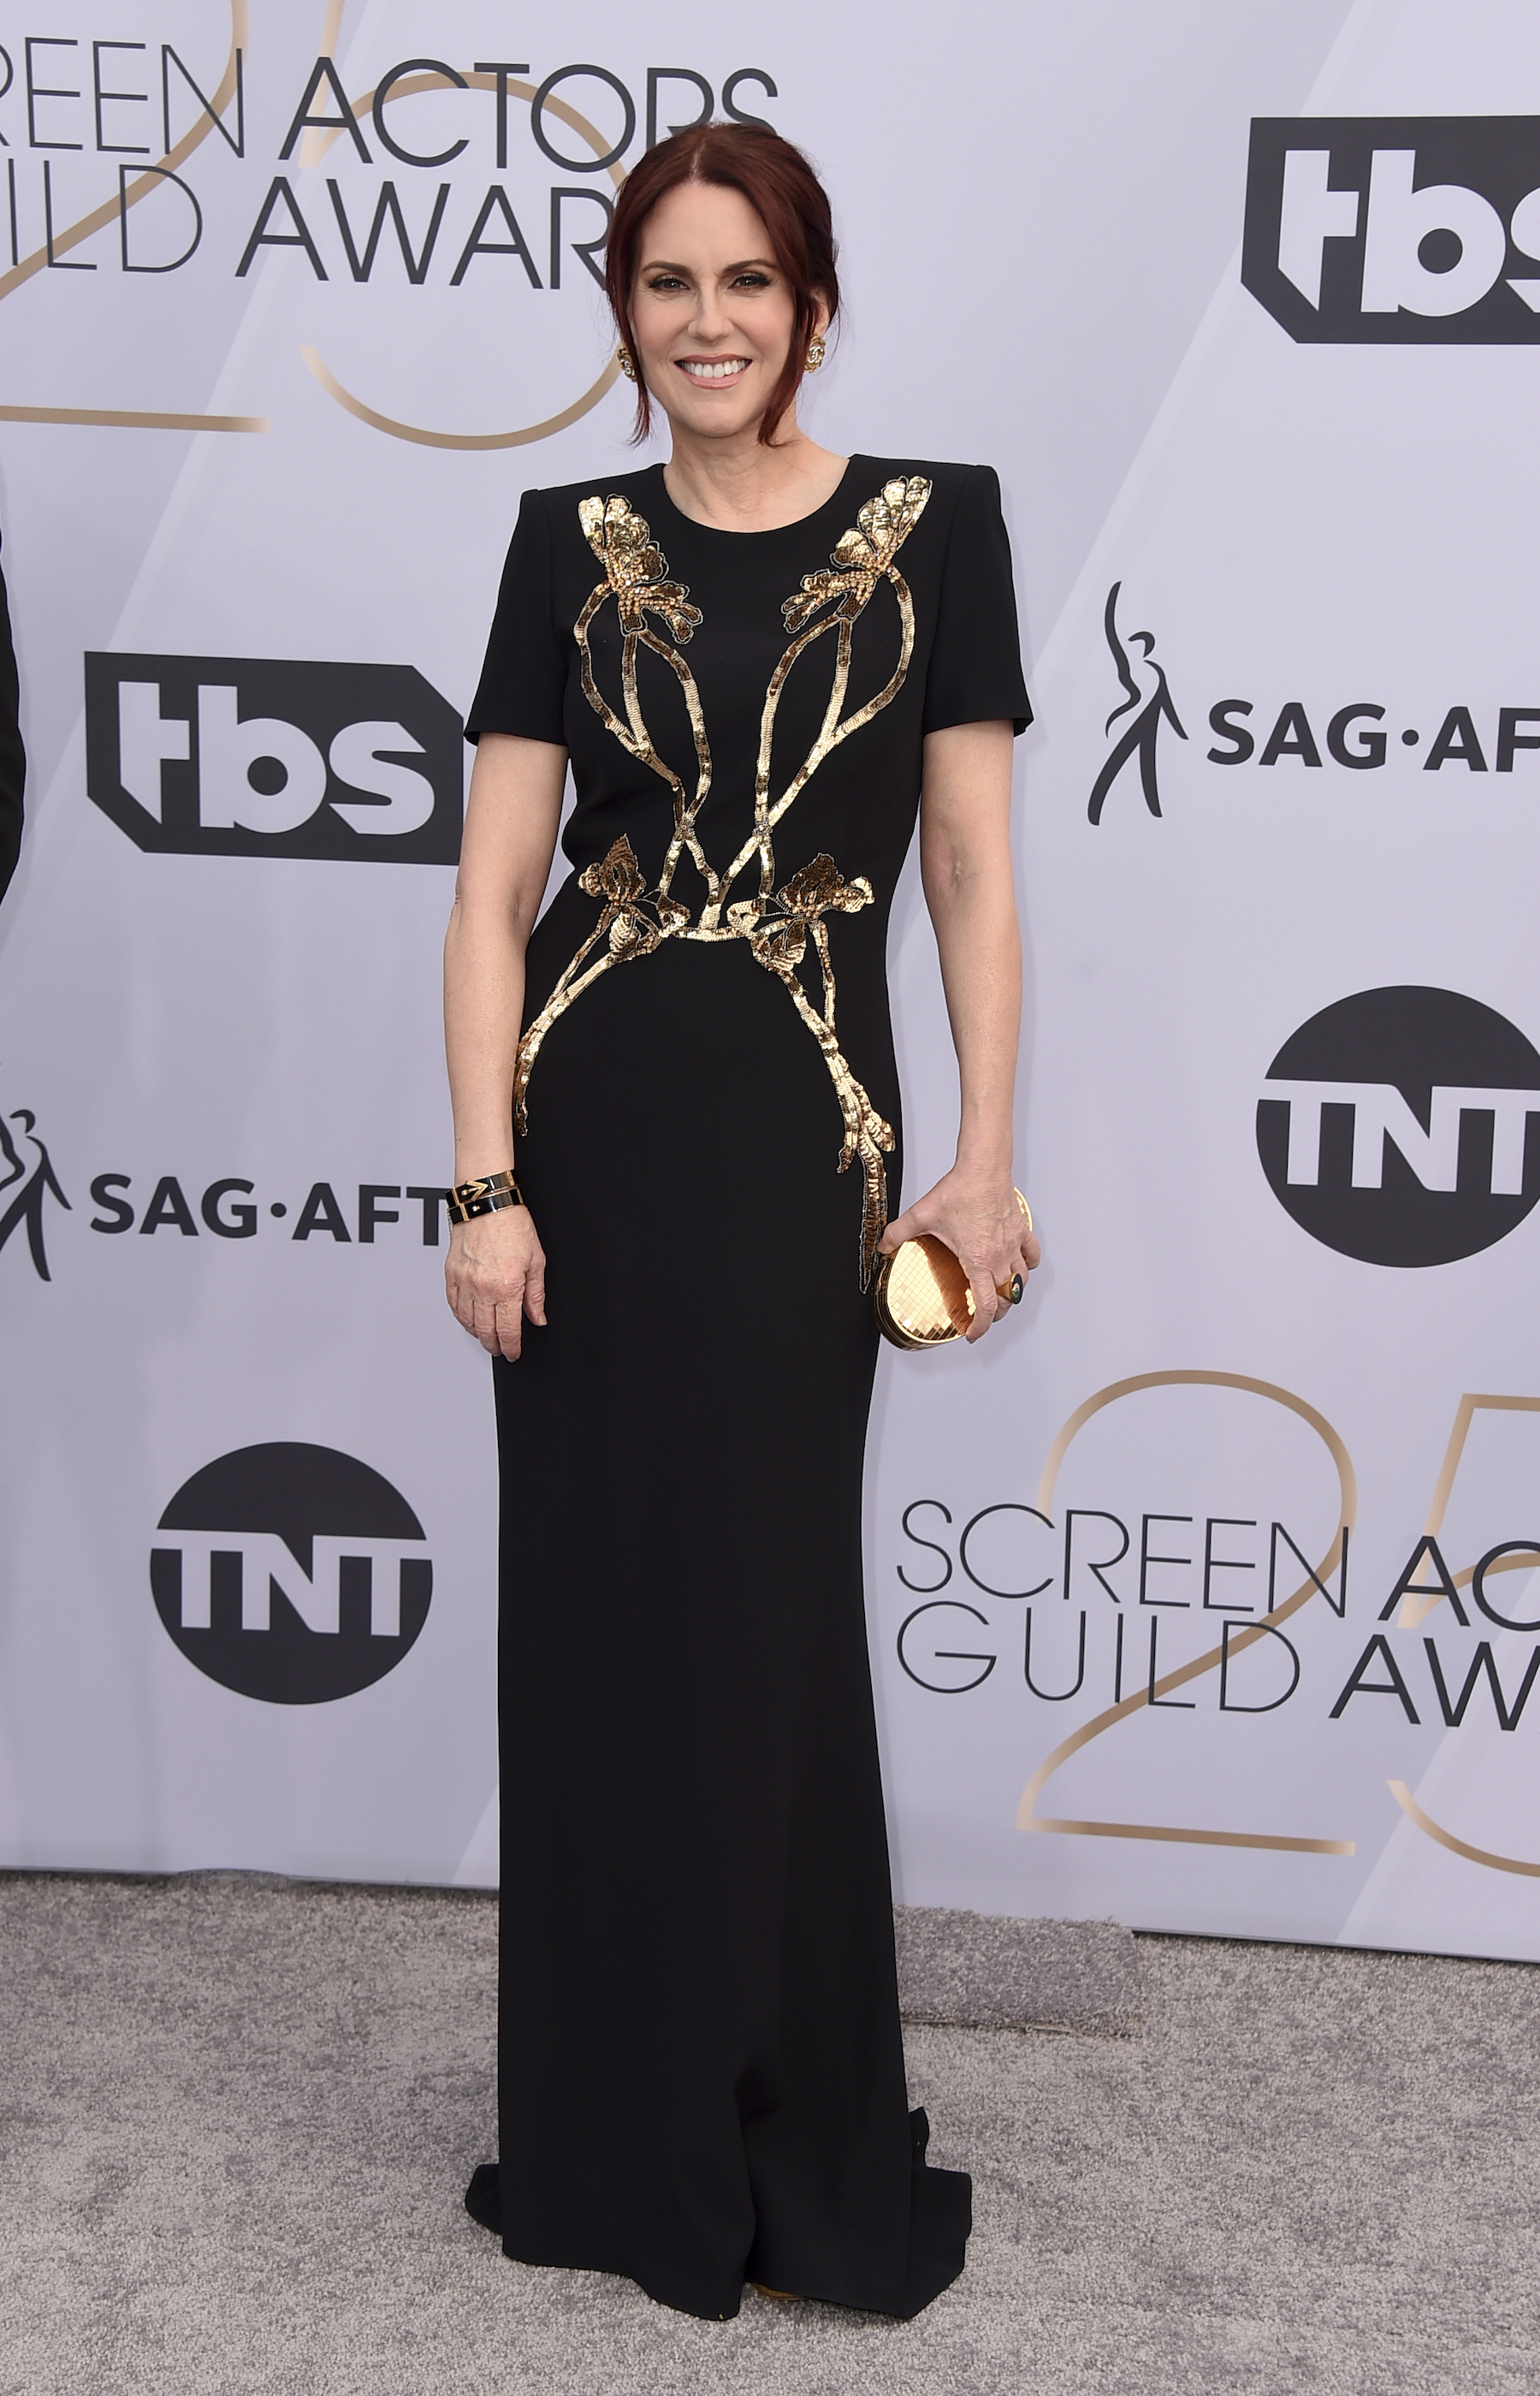 "<div class=""meta image-caption""><div class=""origin-logo origin-image ap""><span>AP</span></div><span class=""caption-text"">Megan Mullally arrives at the 25th annual Screen Actors Guild Awards at the Shrine Auditorium & Expo Hall on Sunday, Jan. 27, 2019, in Los Angeles. (Jordan Strauss/Invision/AP)</span></div>"